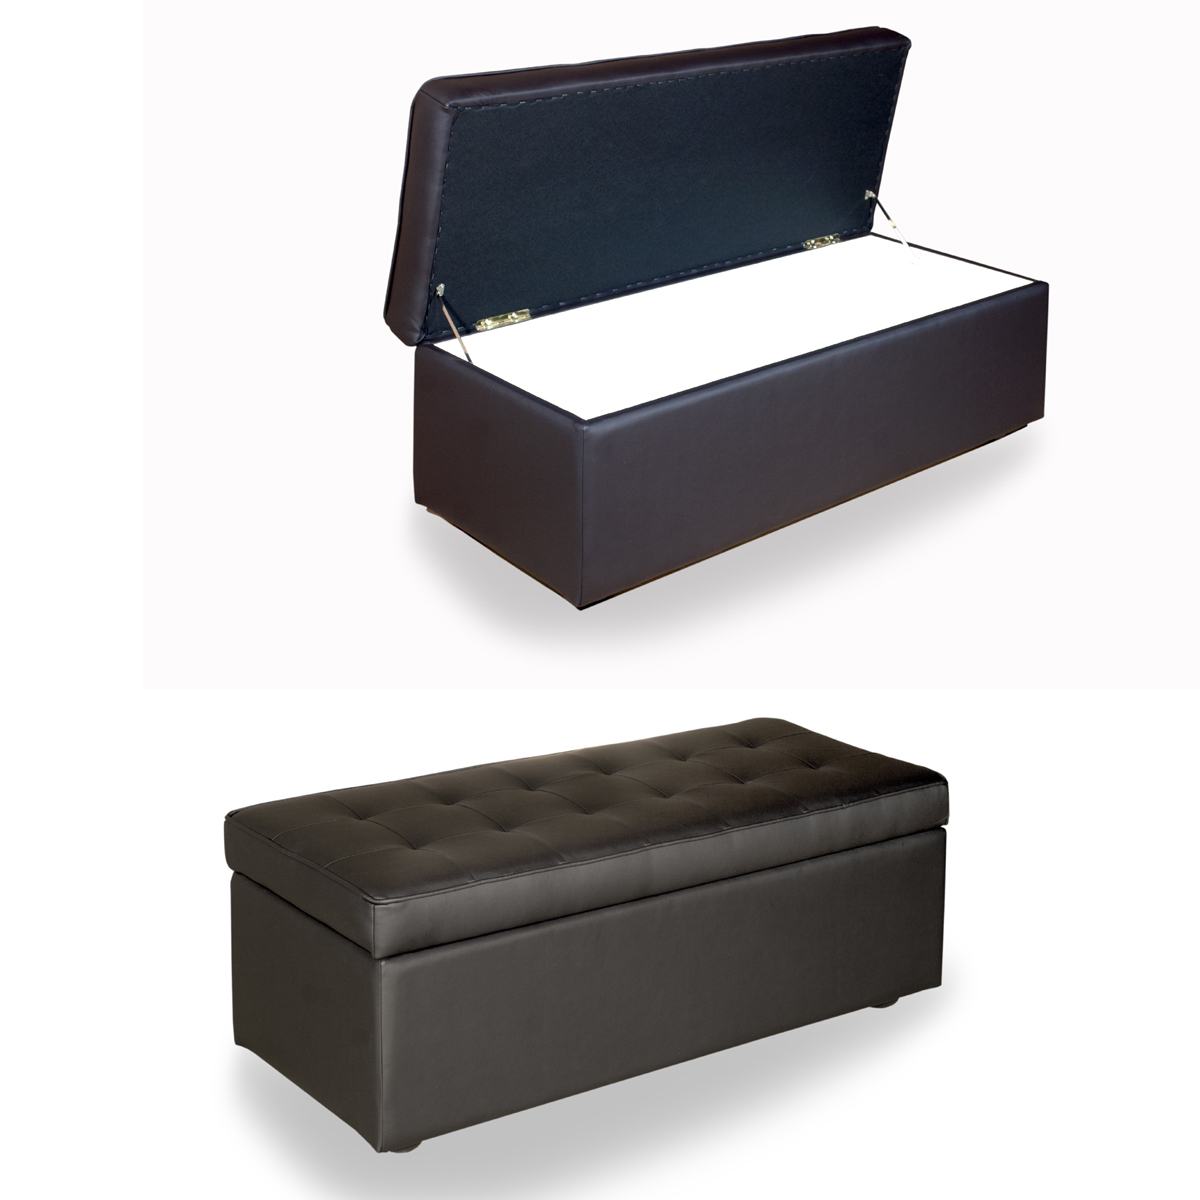 doppelbett majestic sorgt f r ein k nigliches schlafvergn gen moebel trend 24. Black Bedroom Furniture Sets. Home Design Ideas